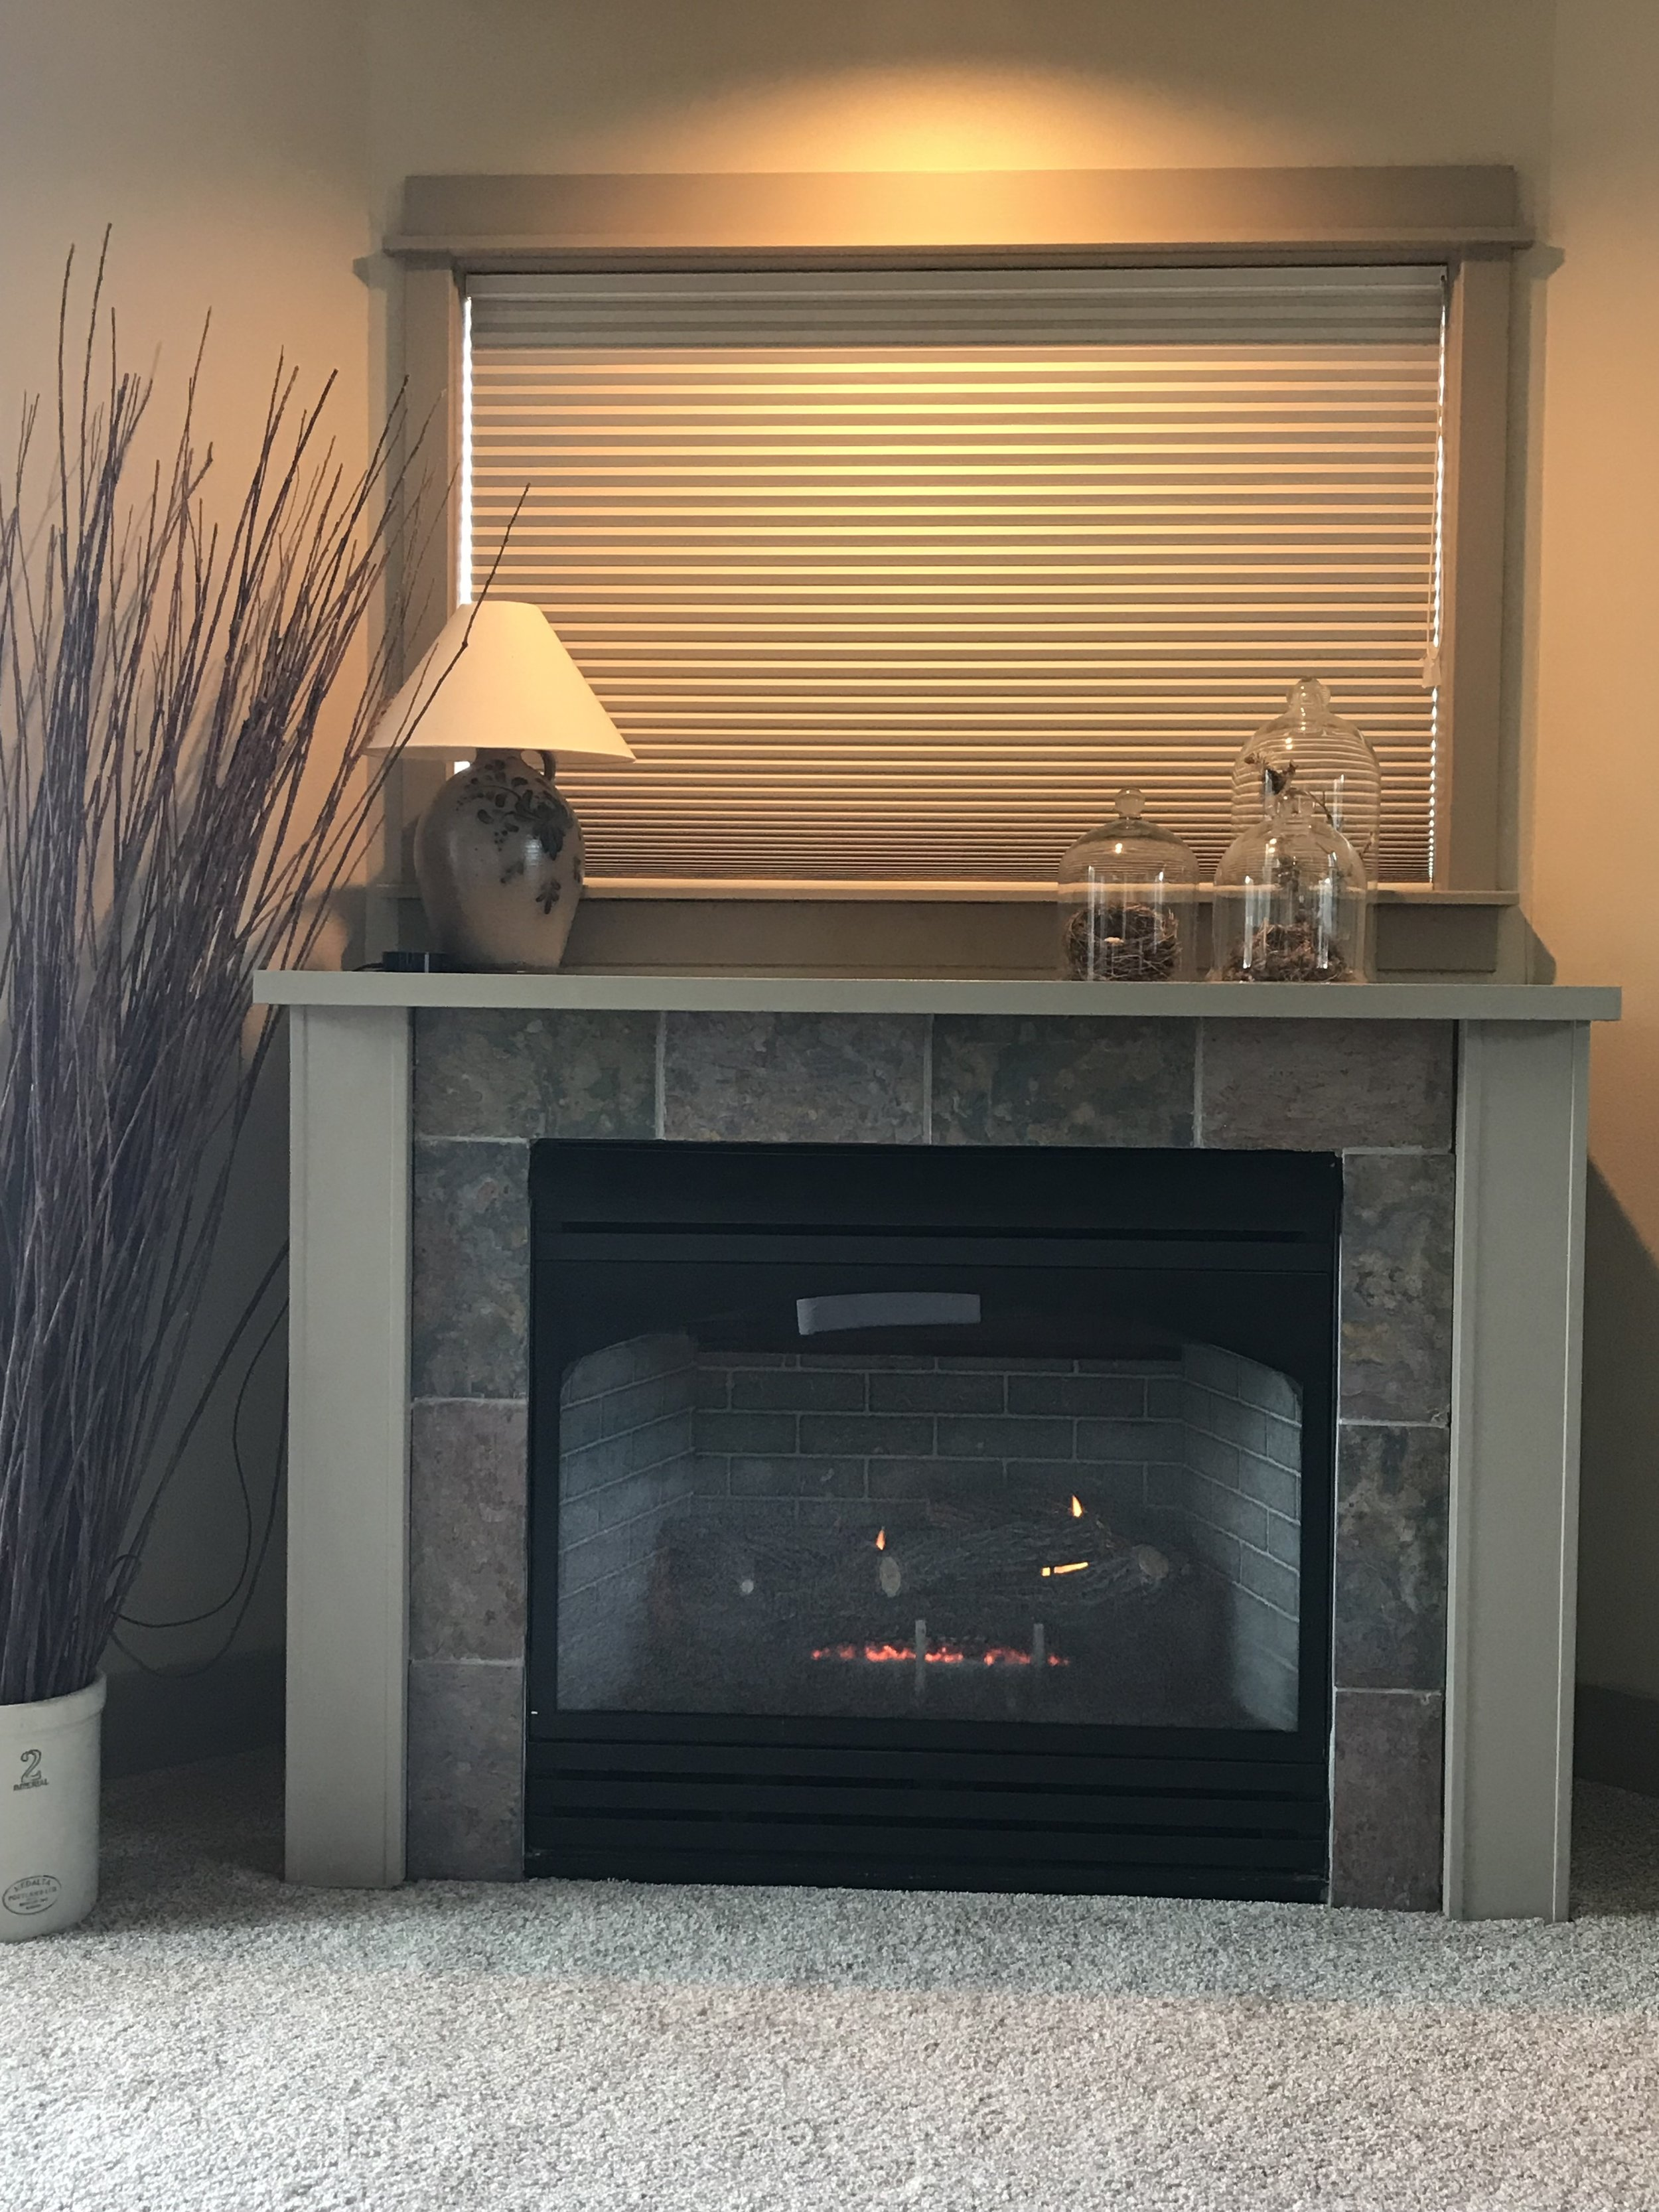 cozy fireplace in room